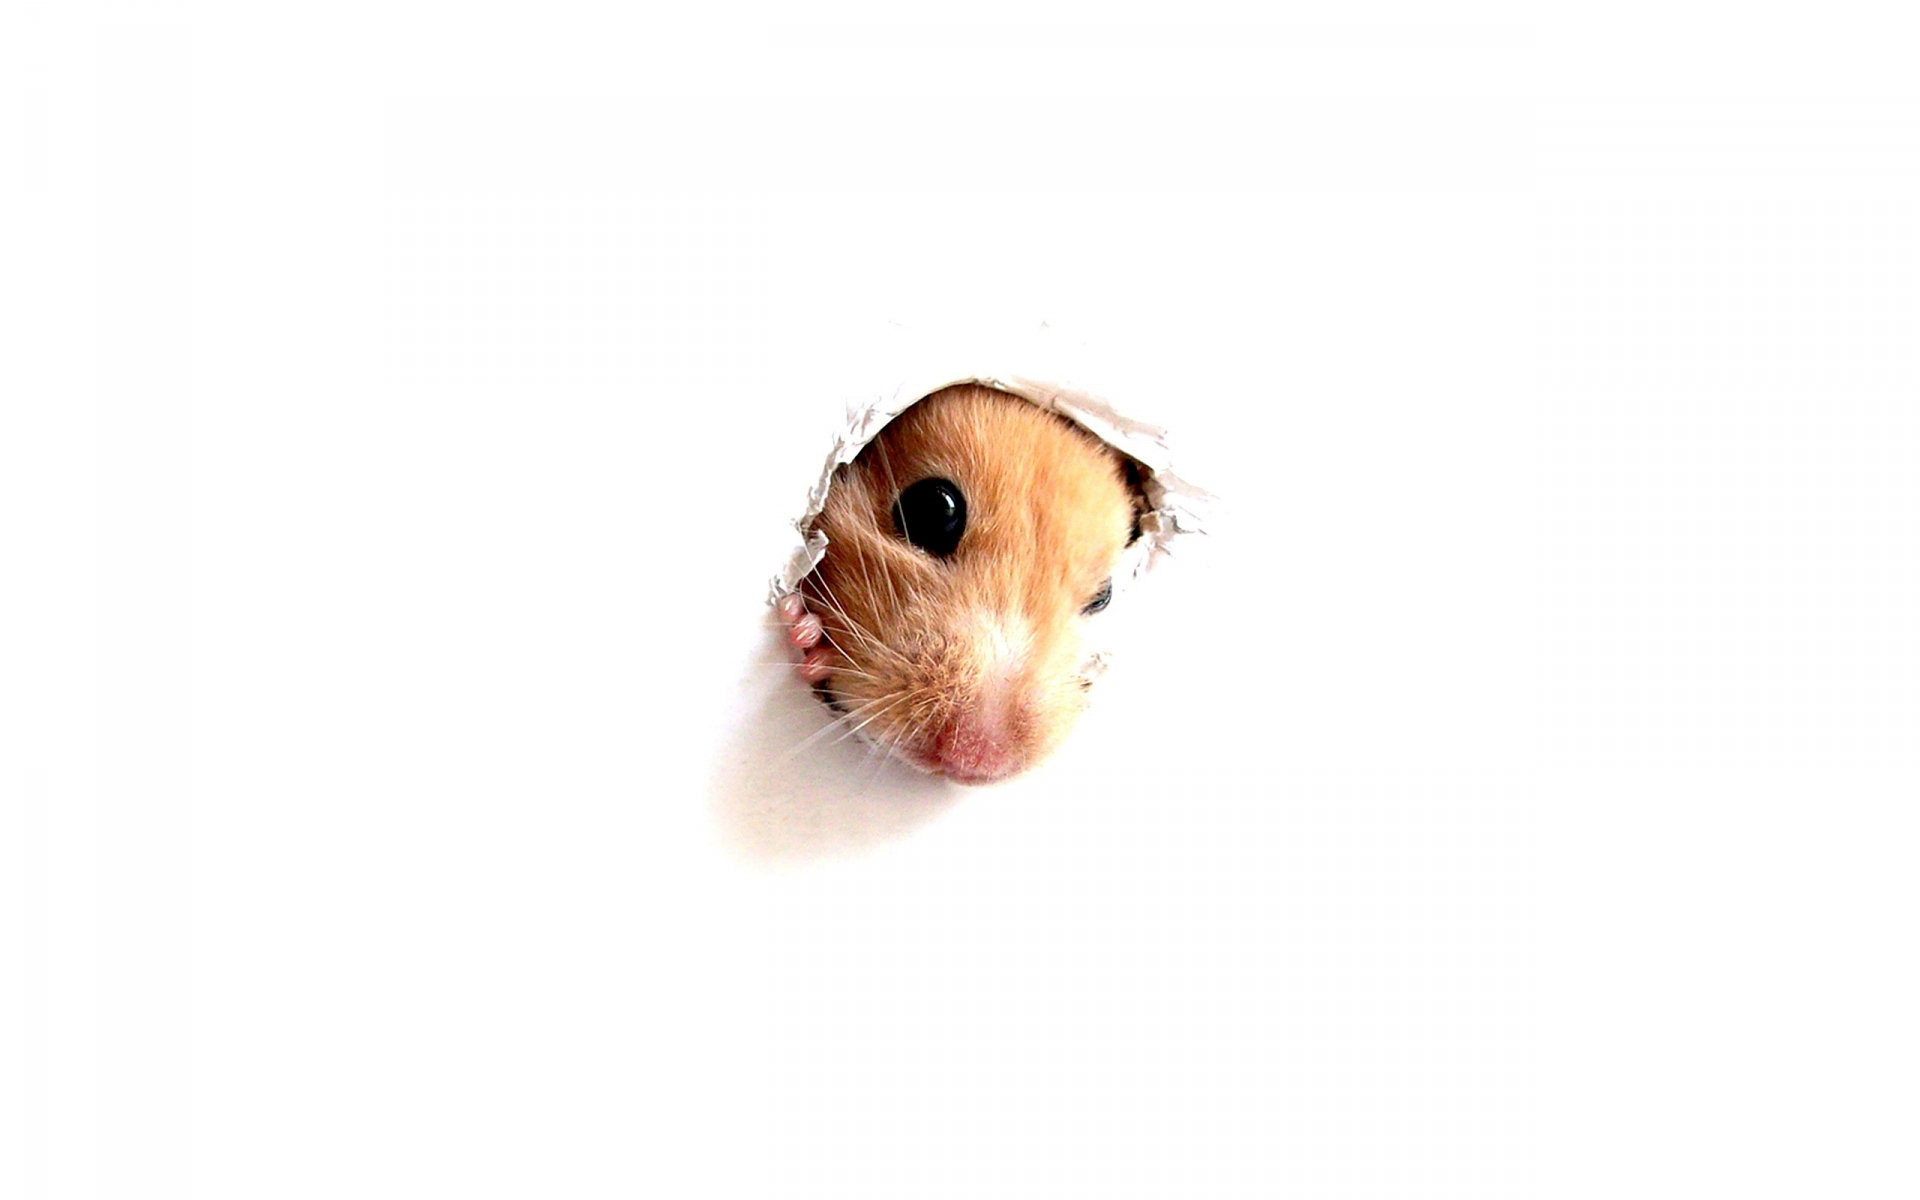 Hamster Computer Wallpapers Desktop Backgrounds 1920x1200 ID 1920x1200